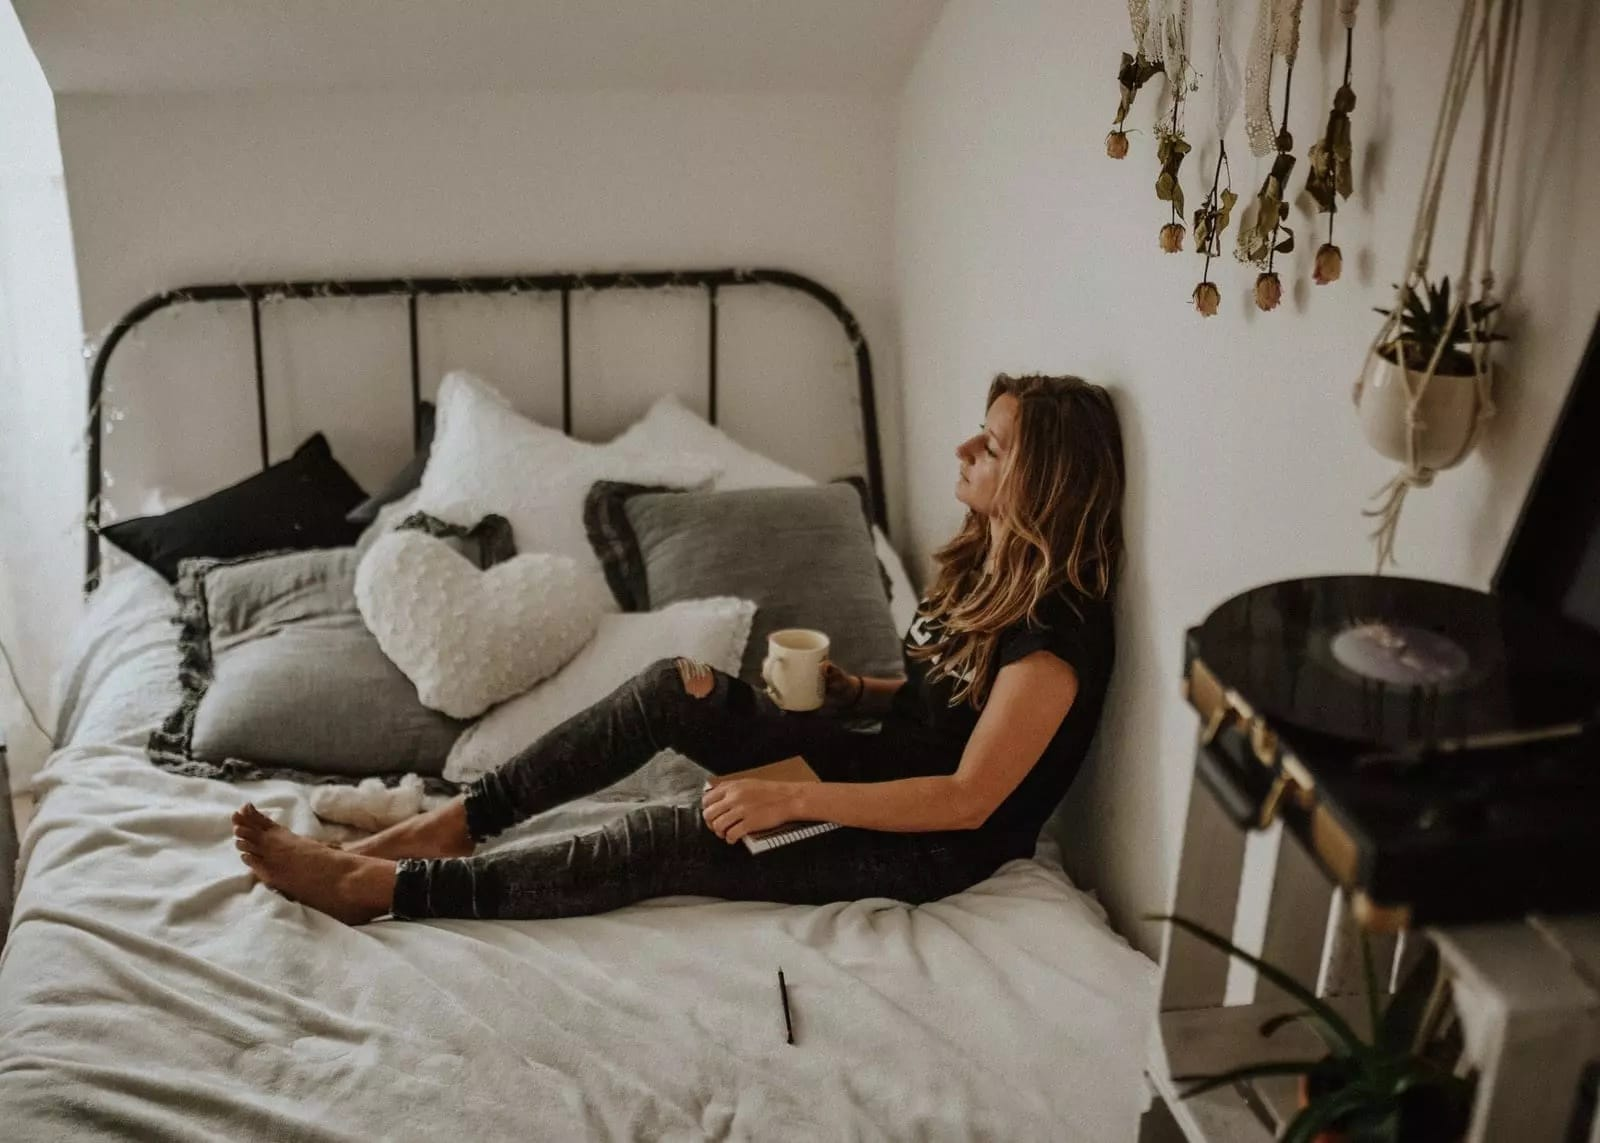 Woman-Laying-in-Bed-Thinking